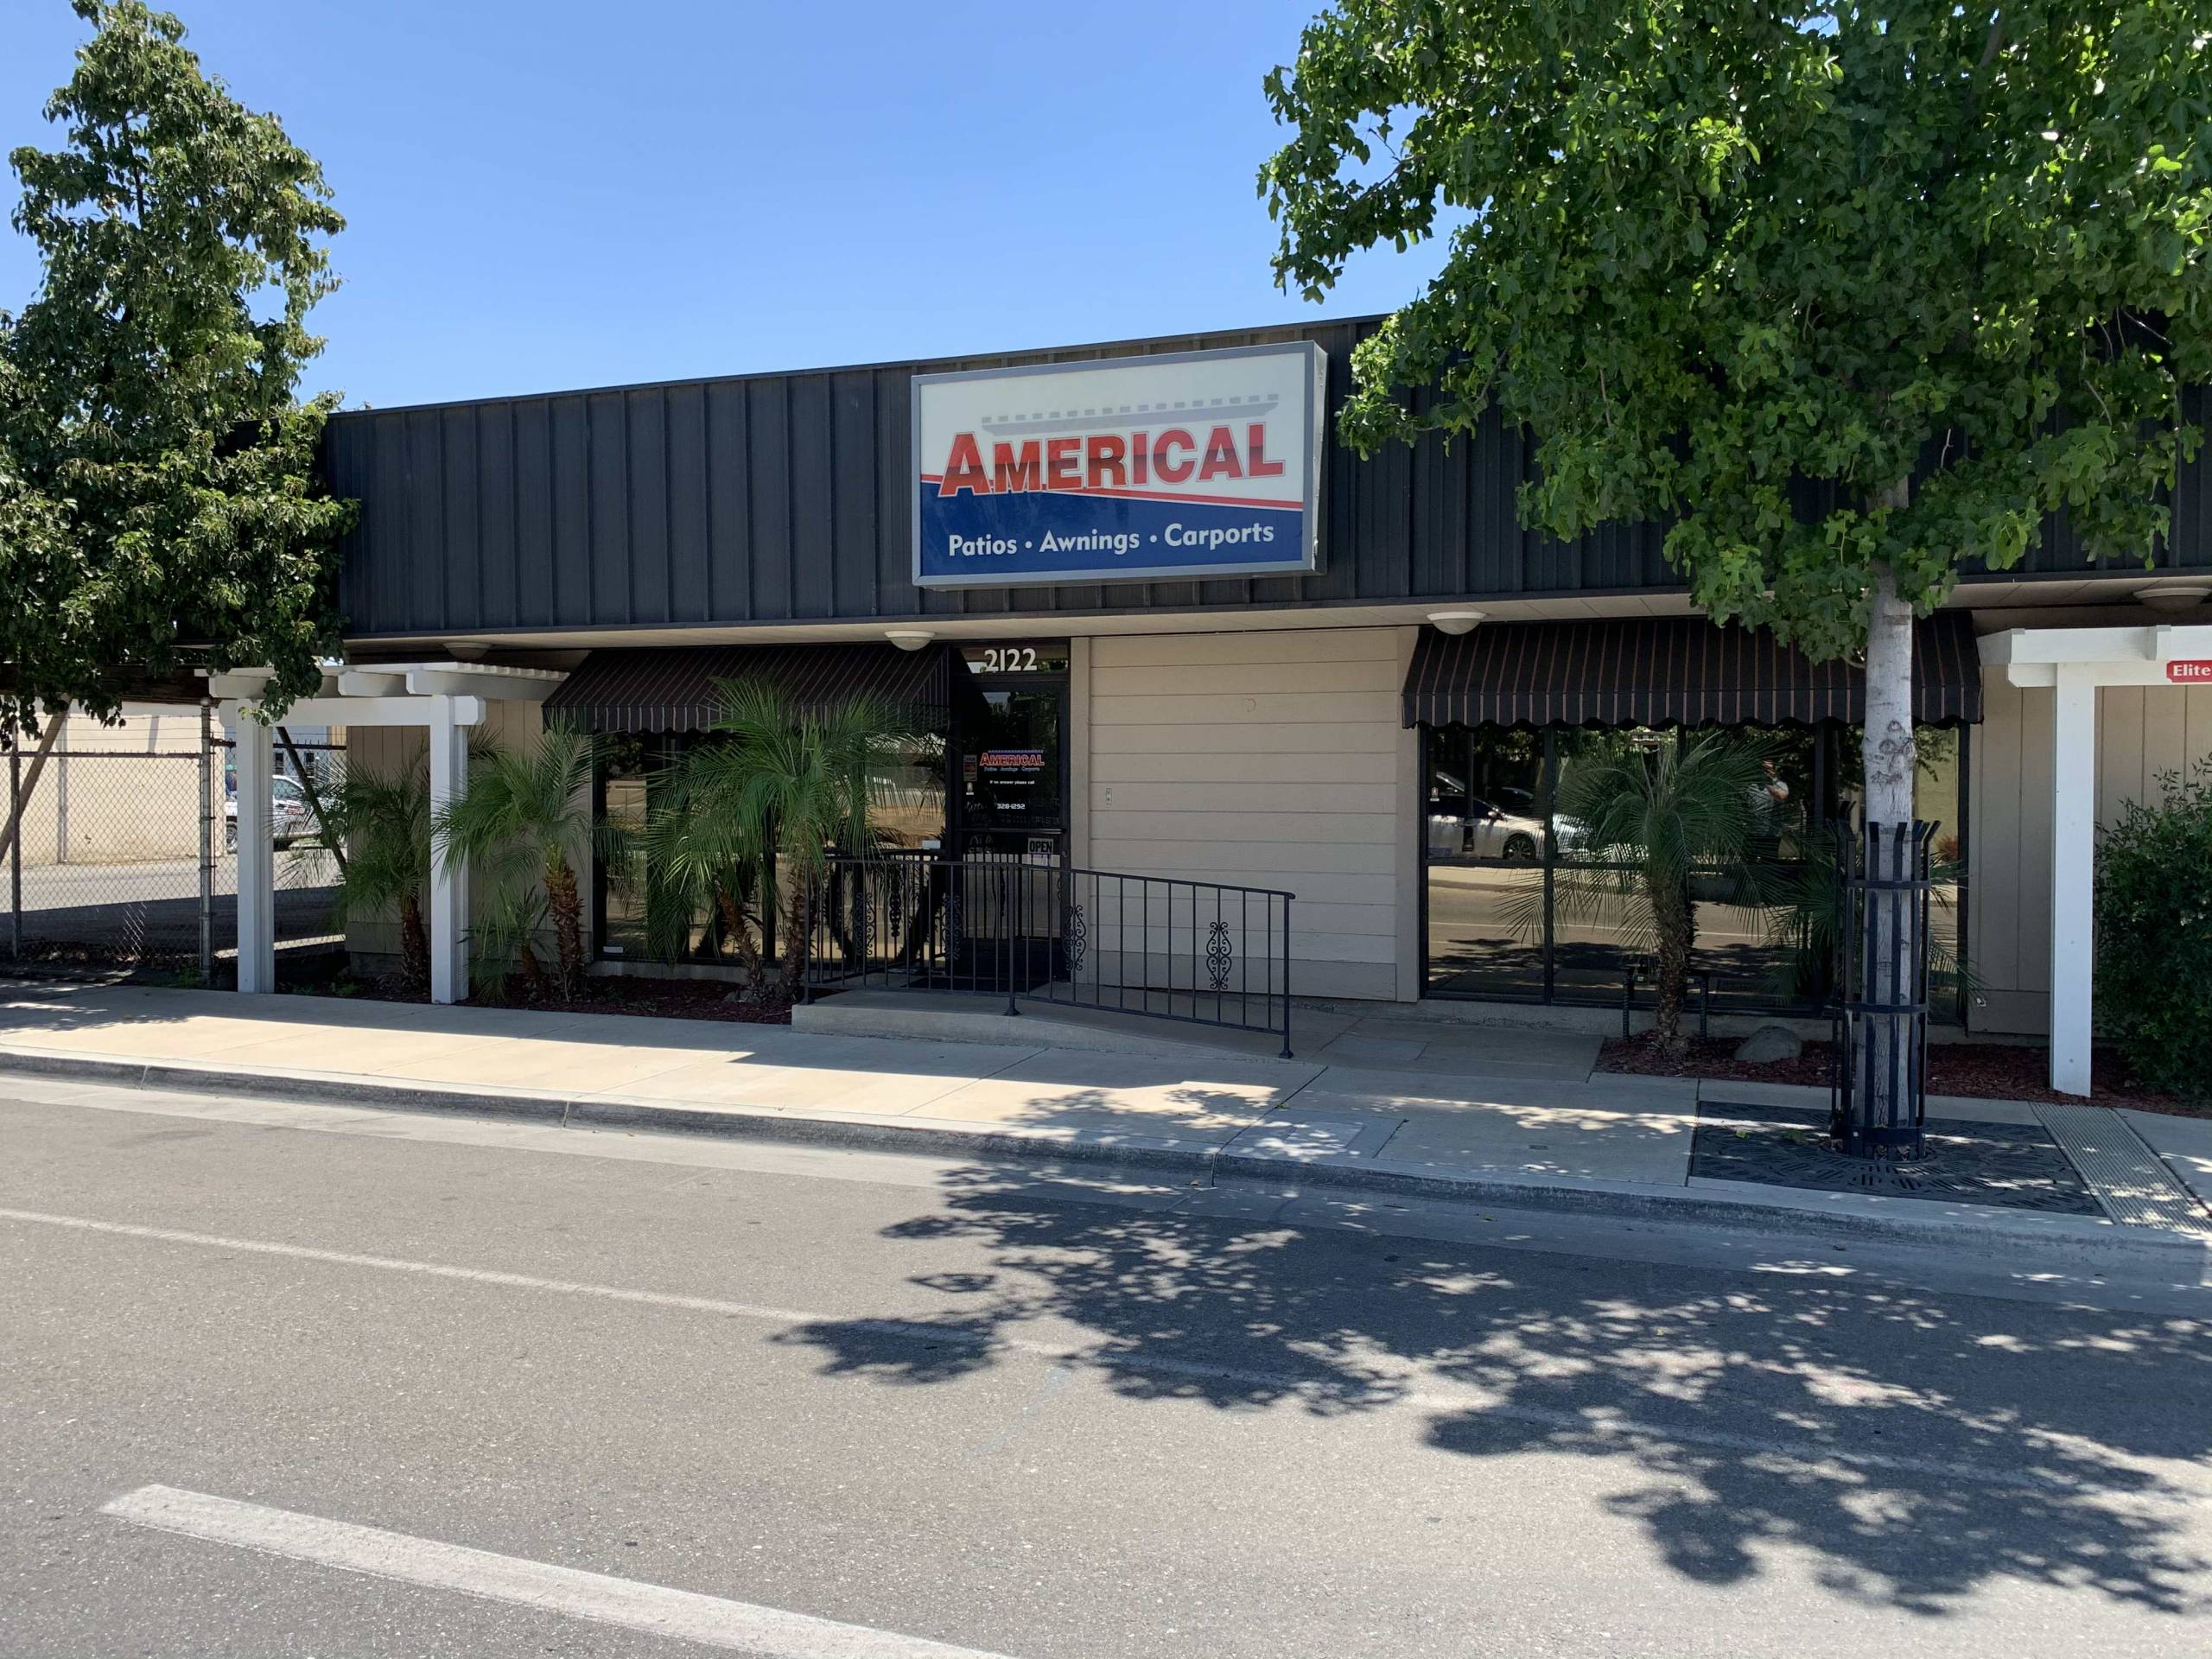 Americal Awning Showroom